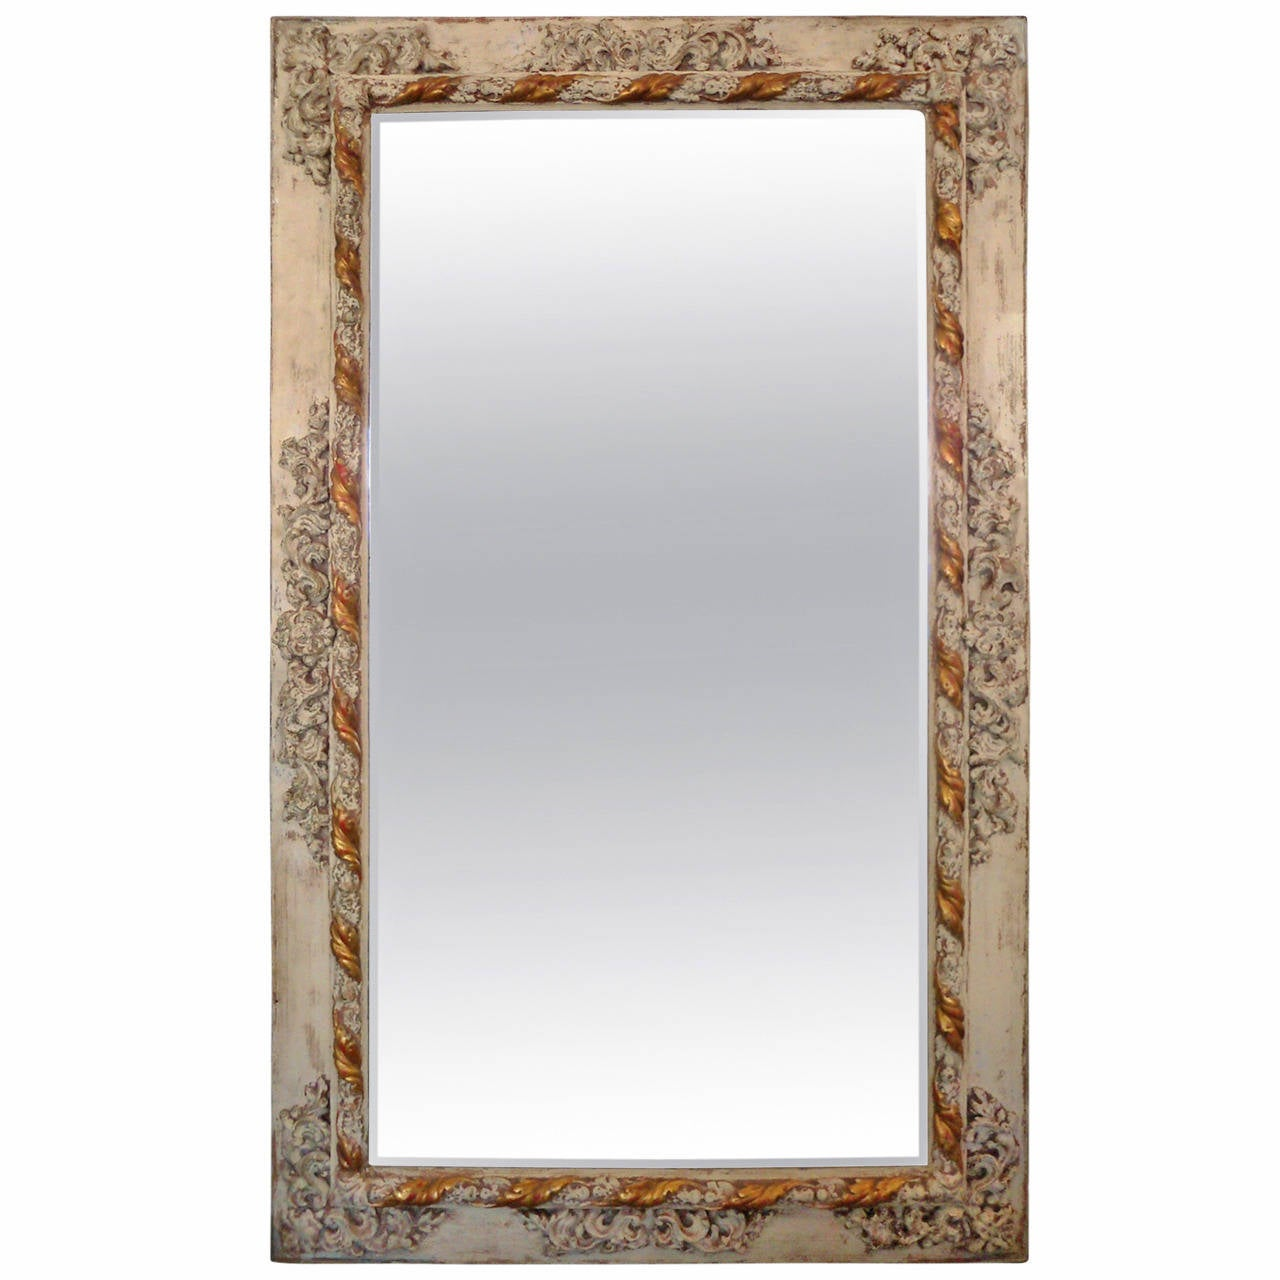 Rustic painted italian mirror at 1stdibs for Rustic mirror